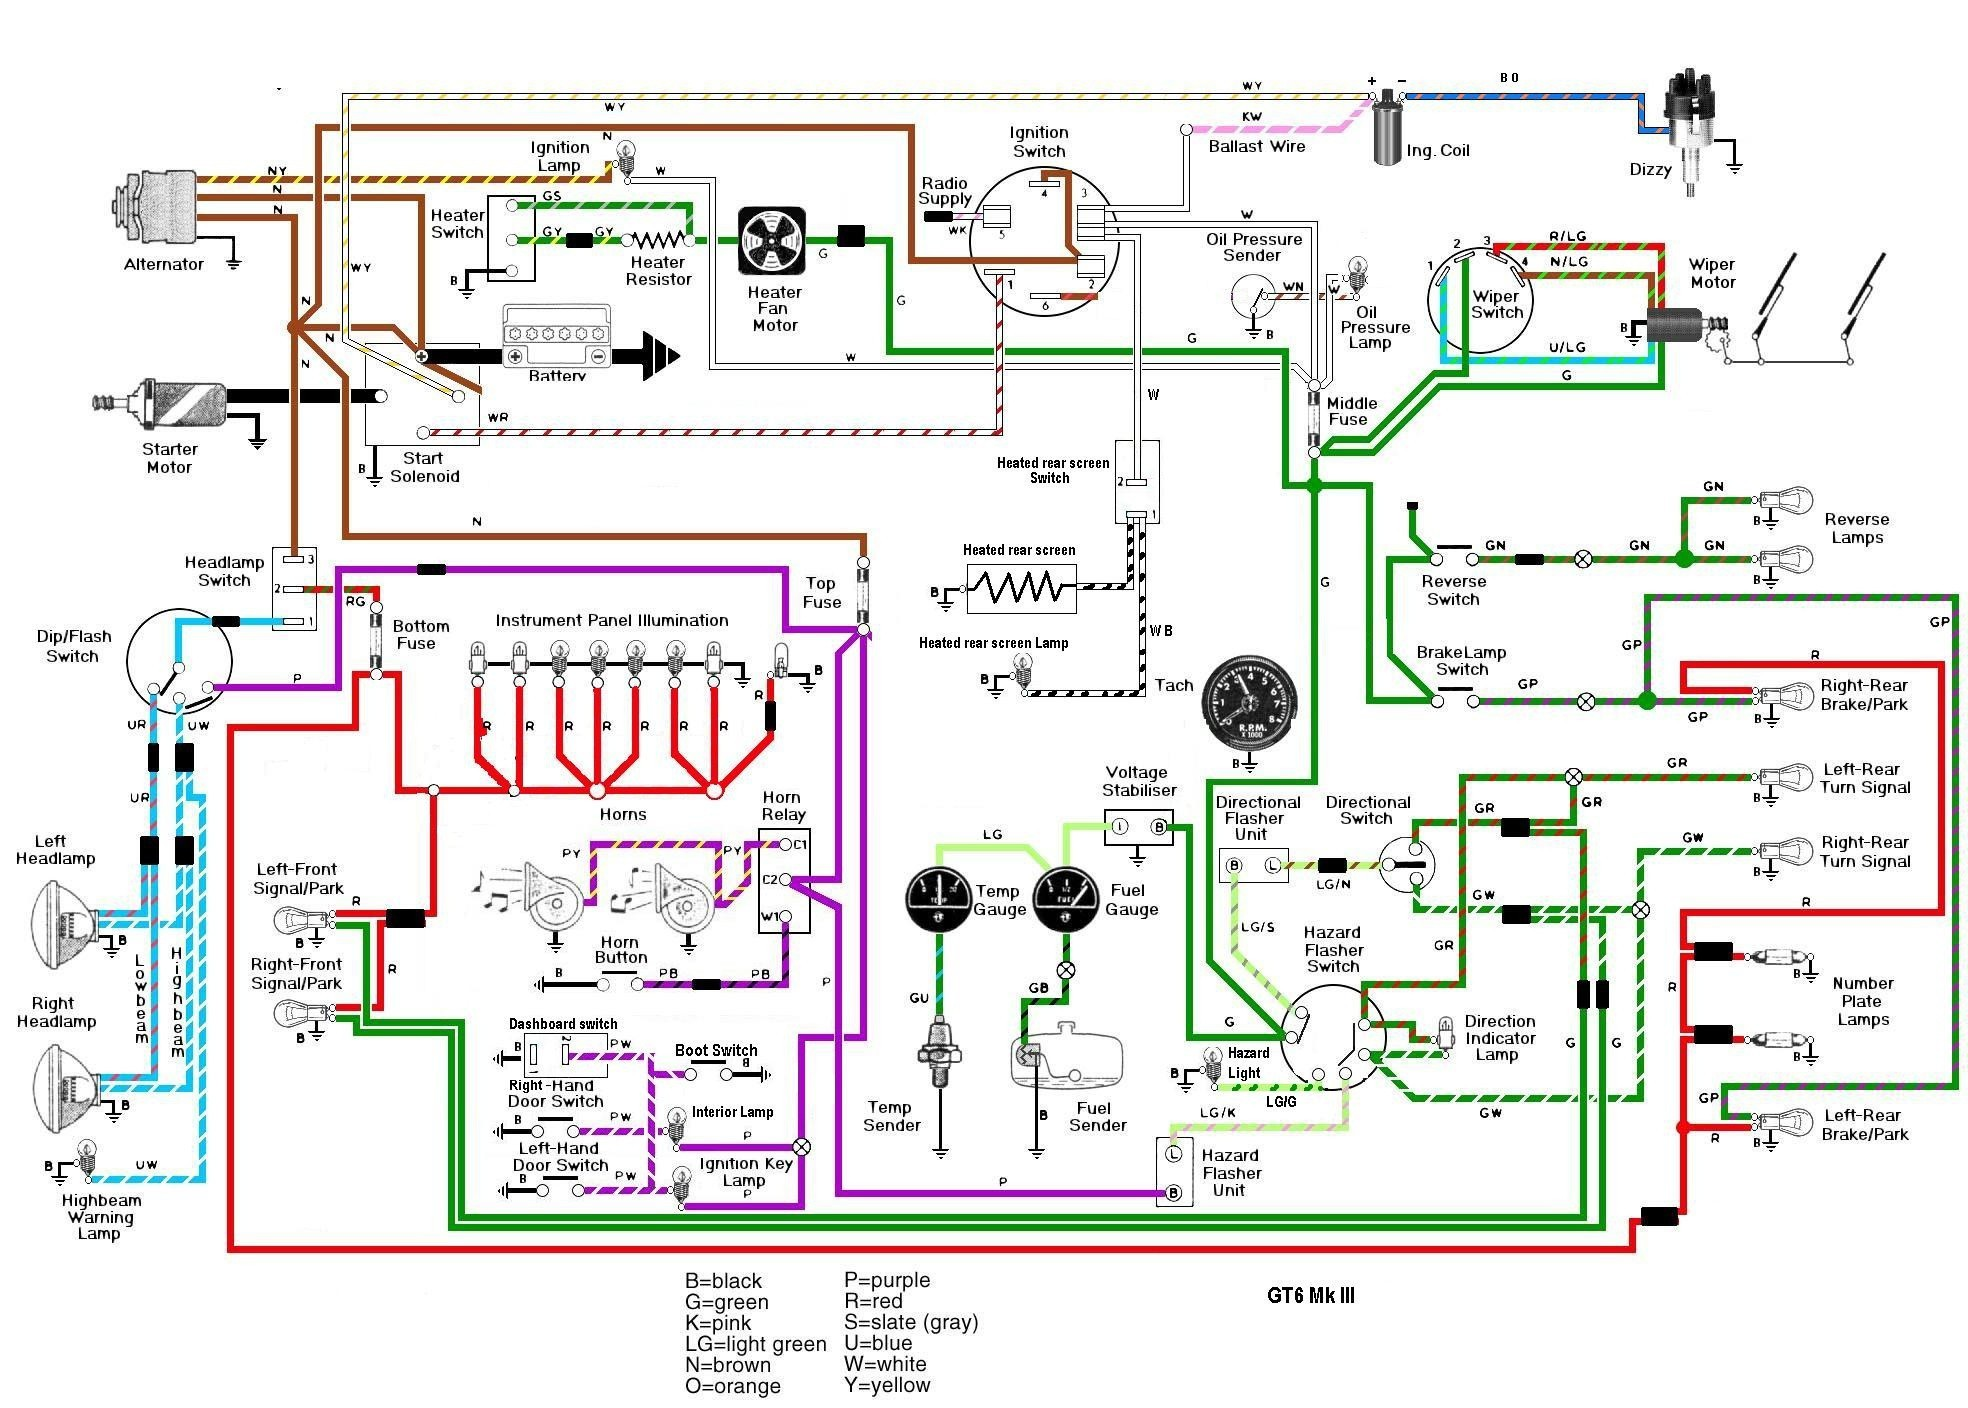 hight resolution of 1974 tr6 wiring diagram wiring diagram new 1971 triumph tr6 wiring diagram 1971 tr6 wiring diagram